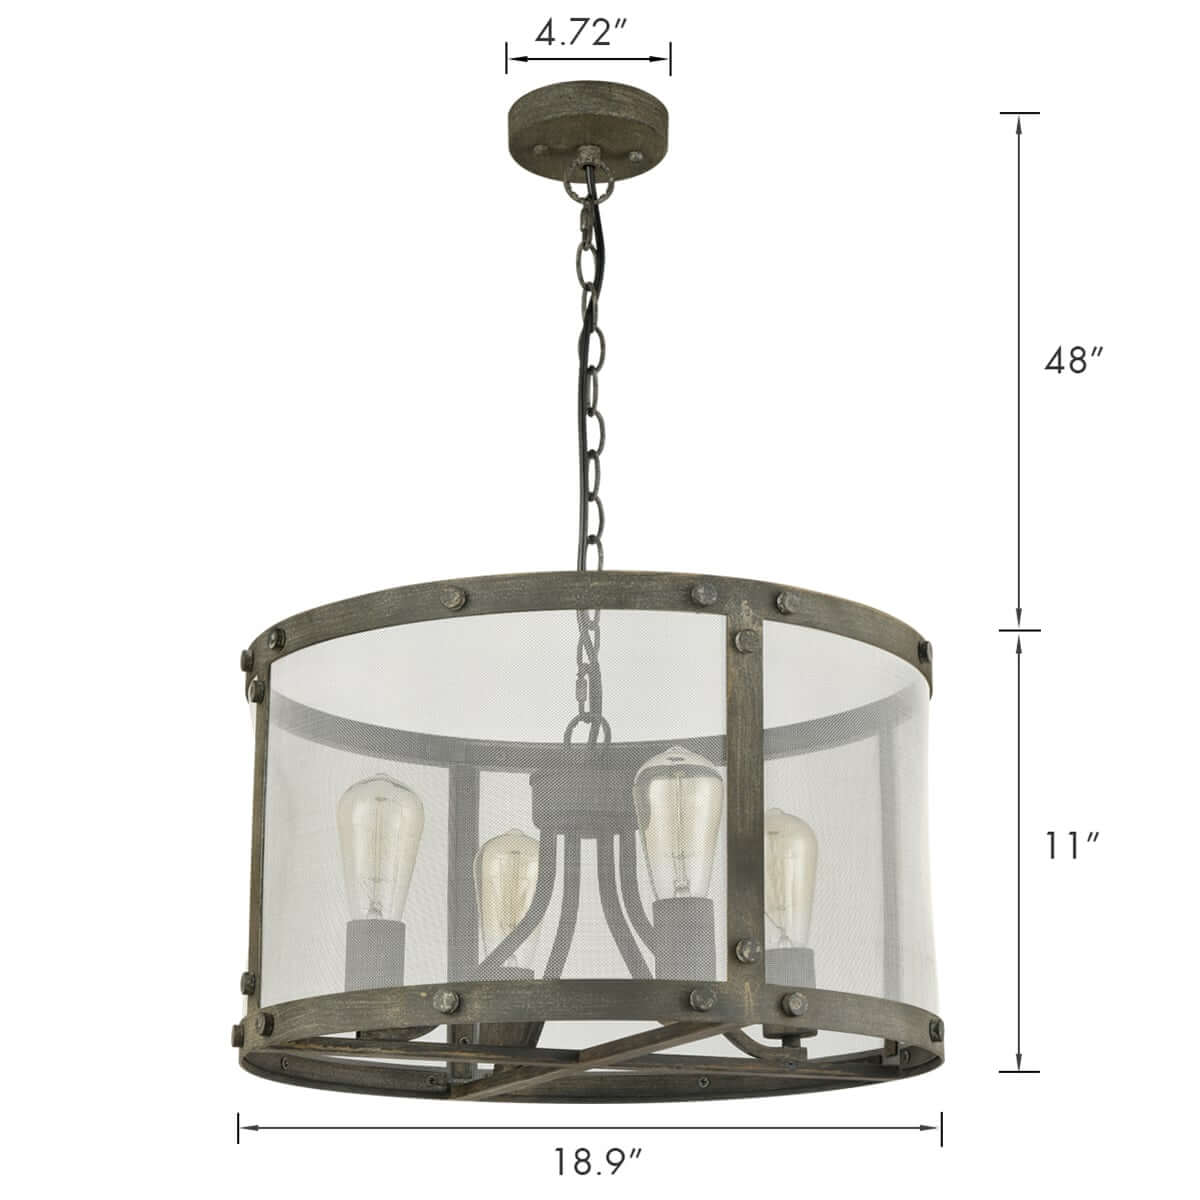 Vintage Metal Mesh Drum Shade Chandelier